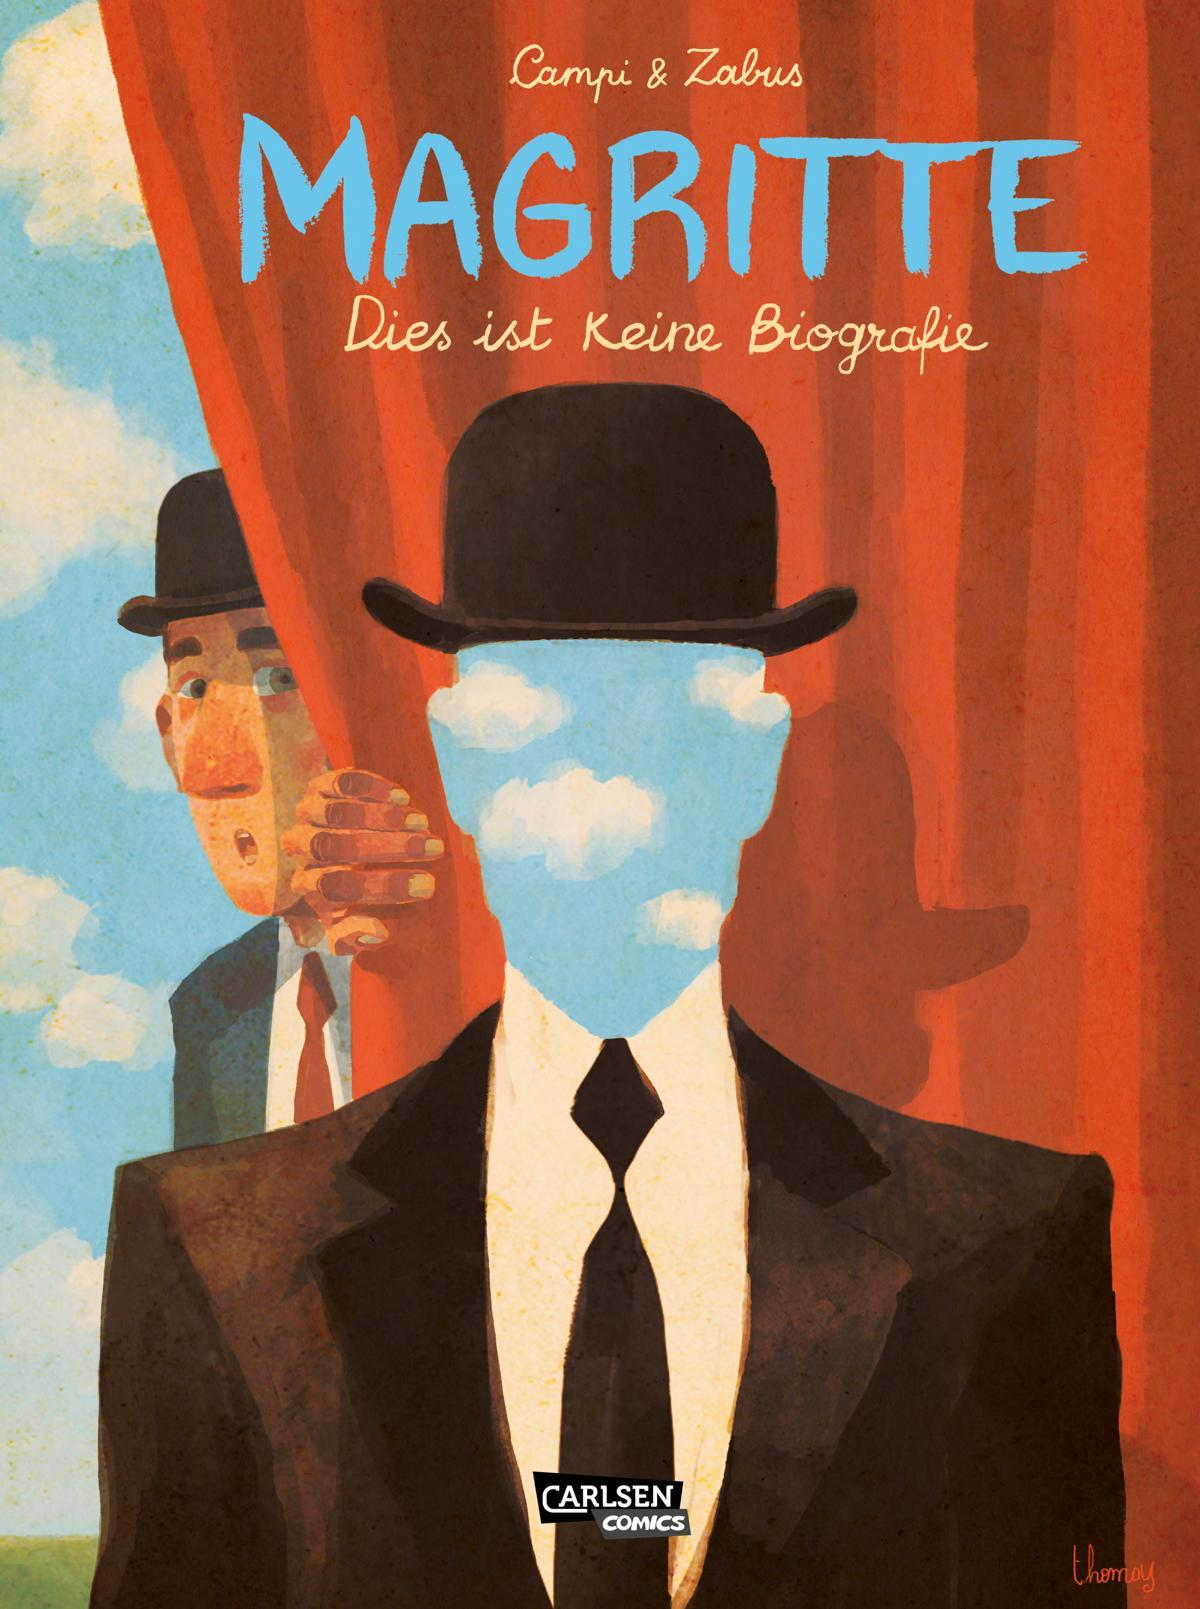 comic 08 17 Magritte